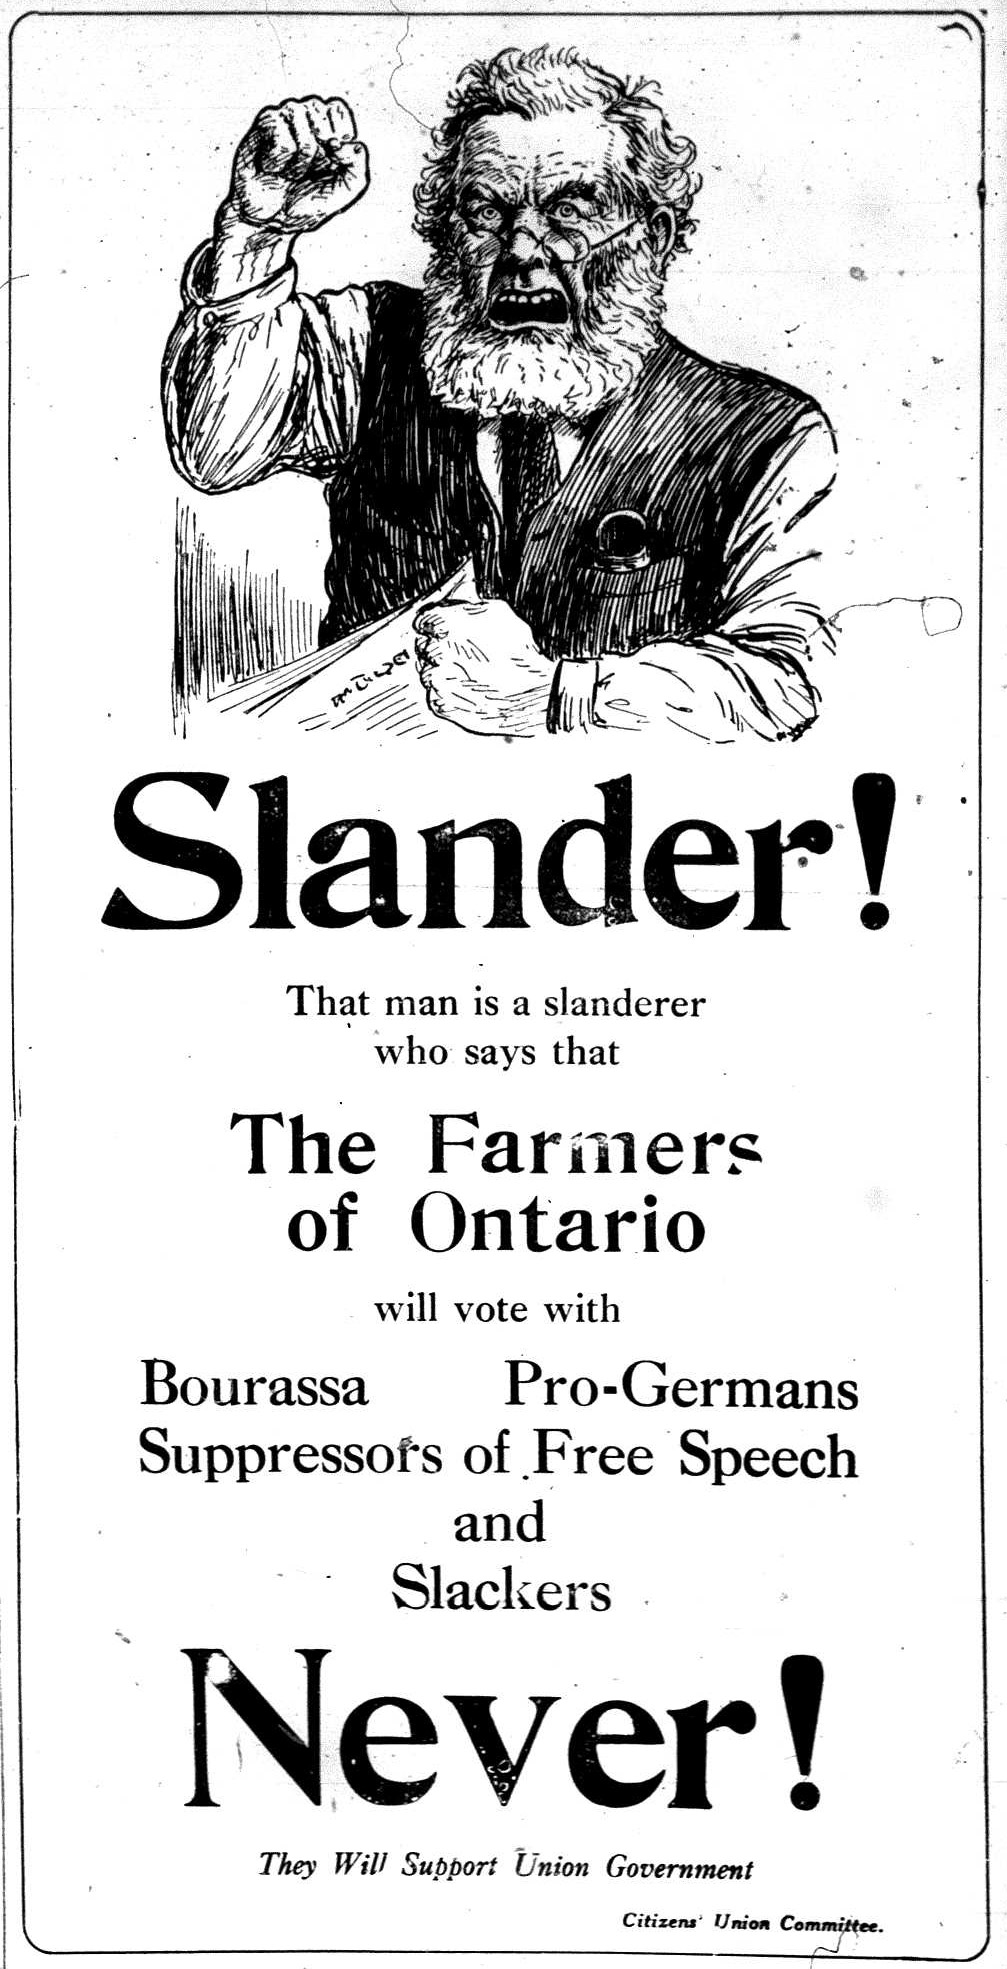 a union ad for the 1917 Canadian general election